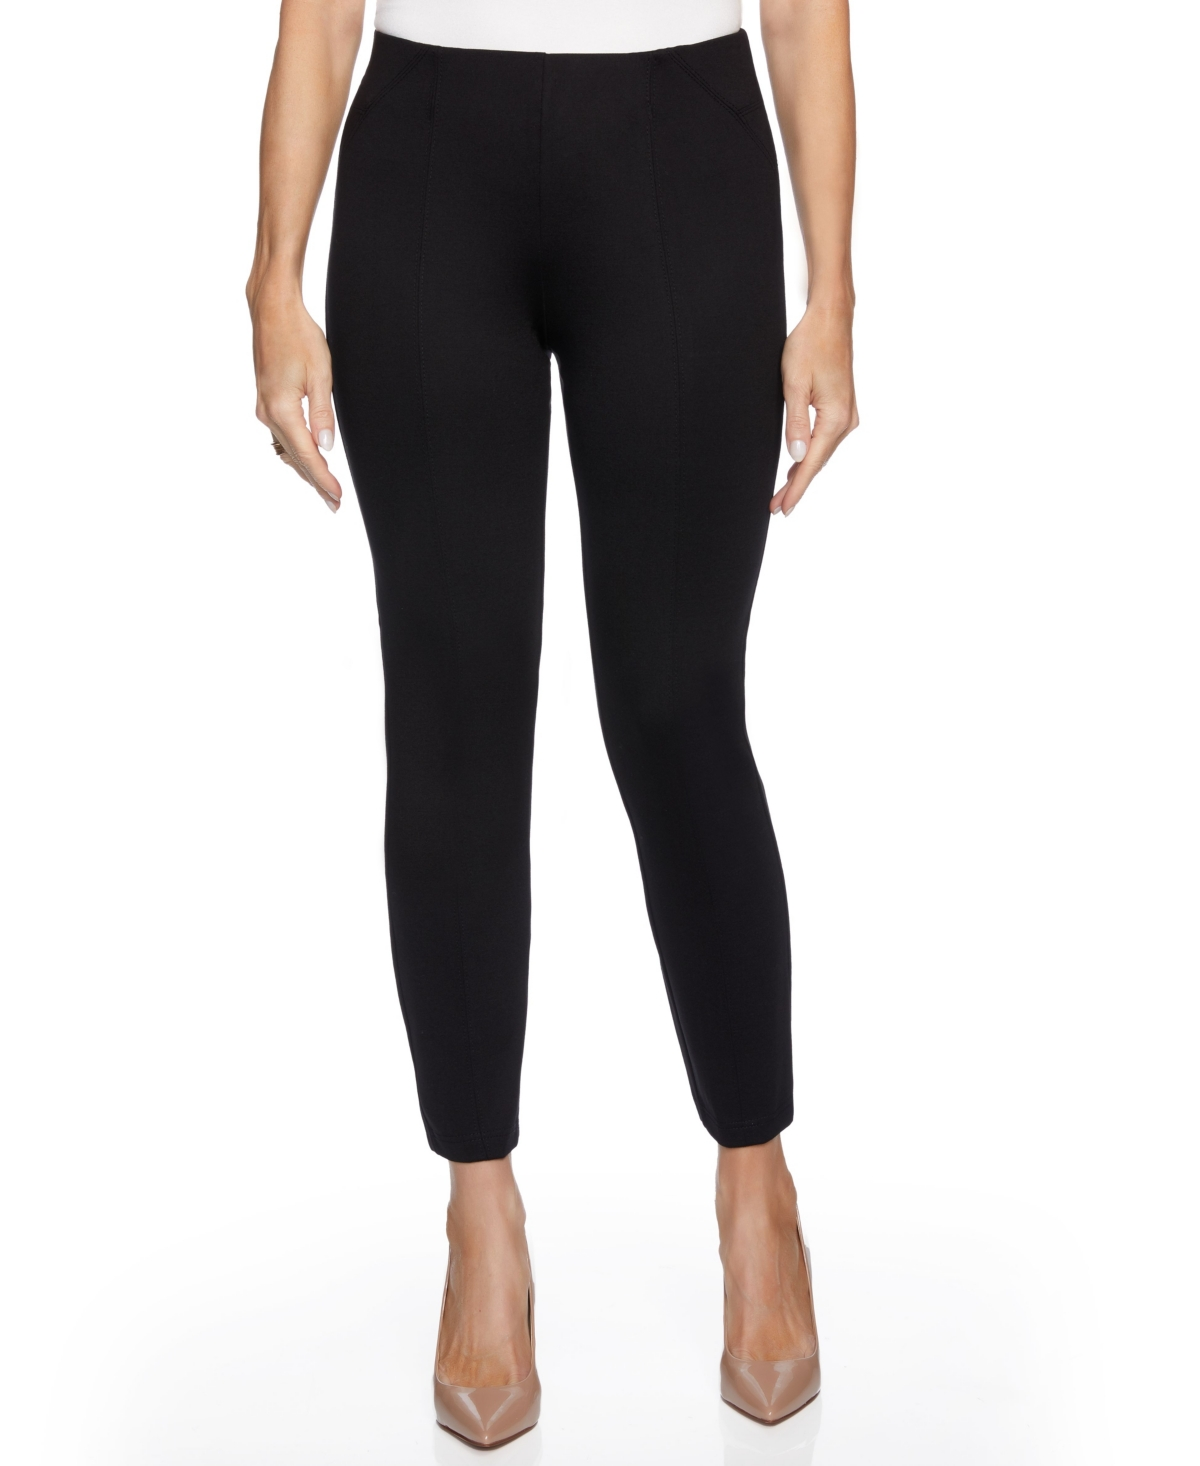 Women's Slim Leg with Seaming on Front Back Pants